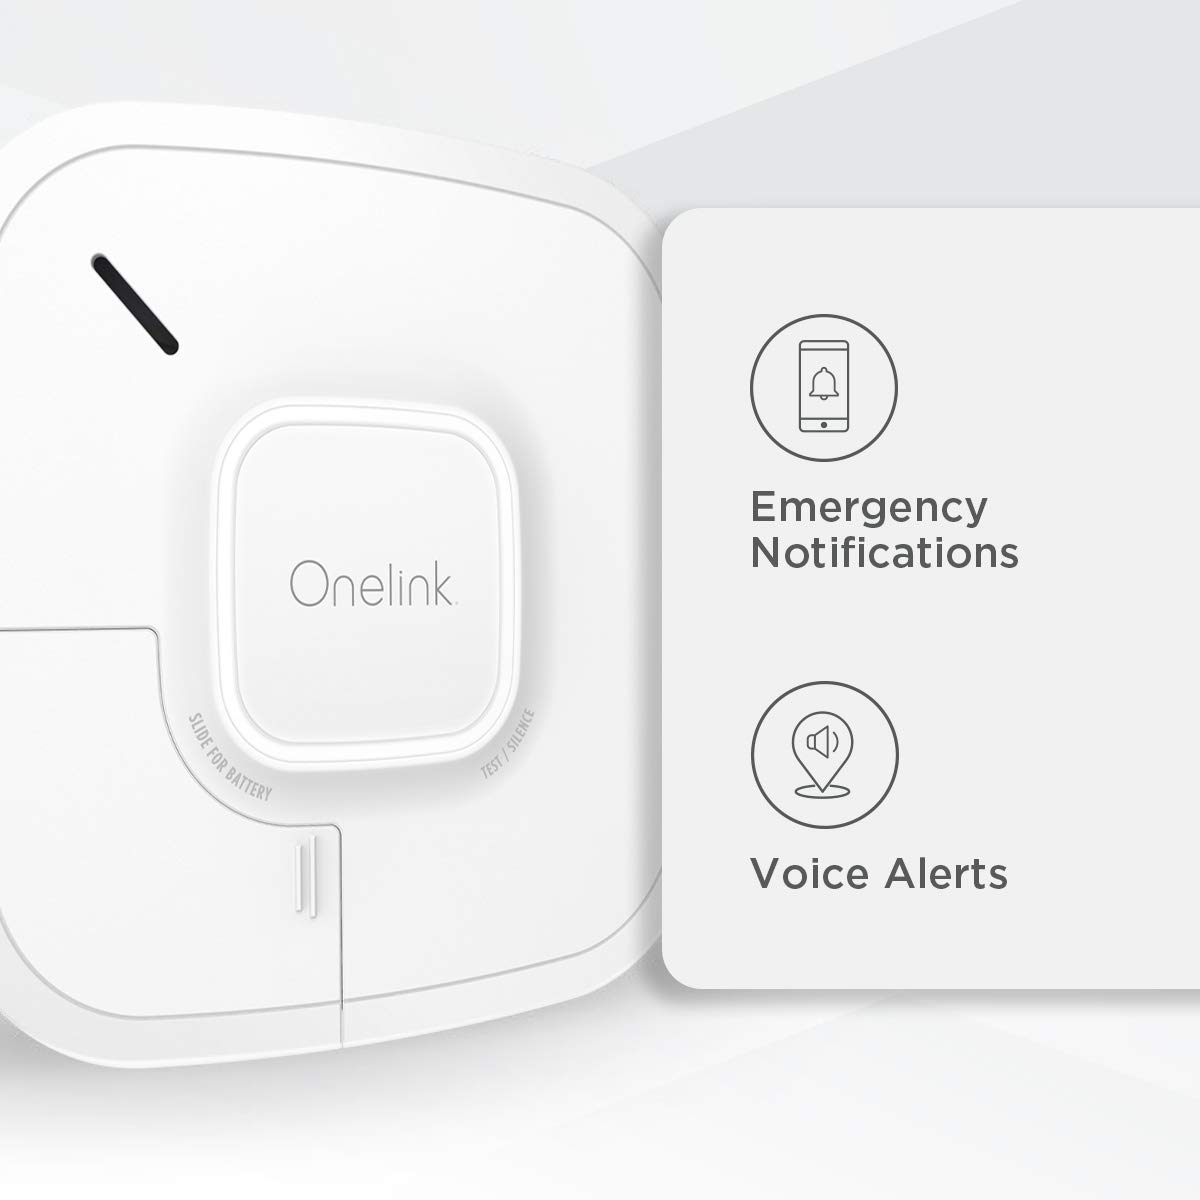 First Alert Smart Onelink Smoke + CO Alarm - Battery Operated (1042136)